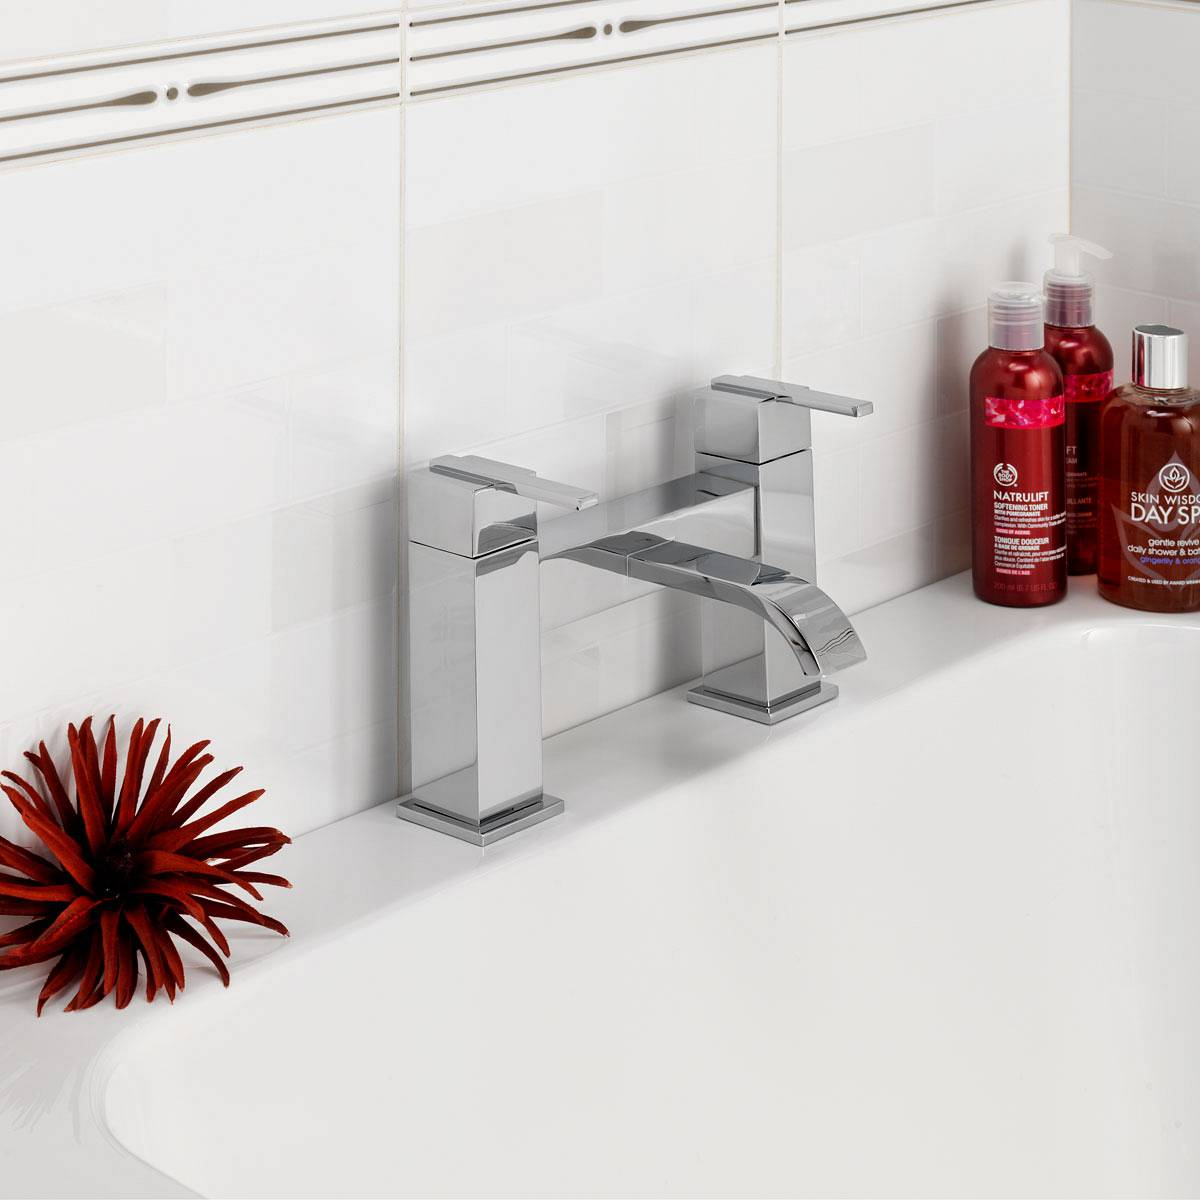 How to fit a bath mixer tap